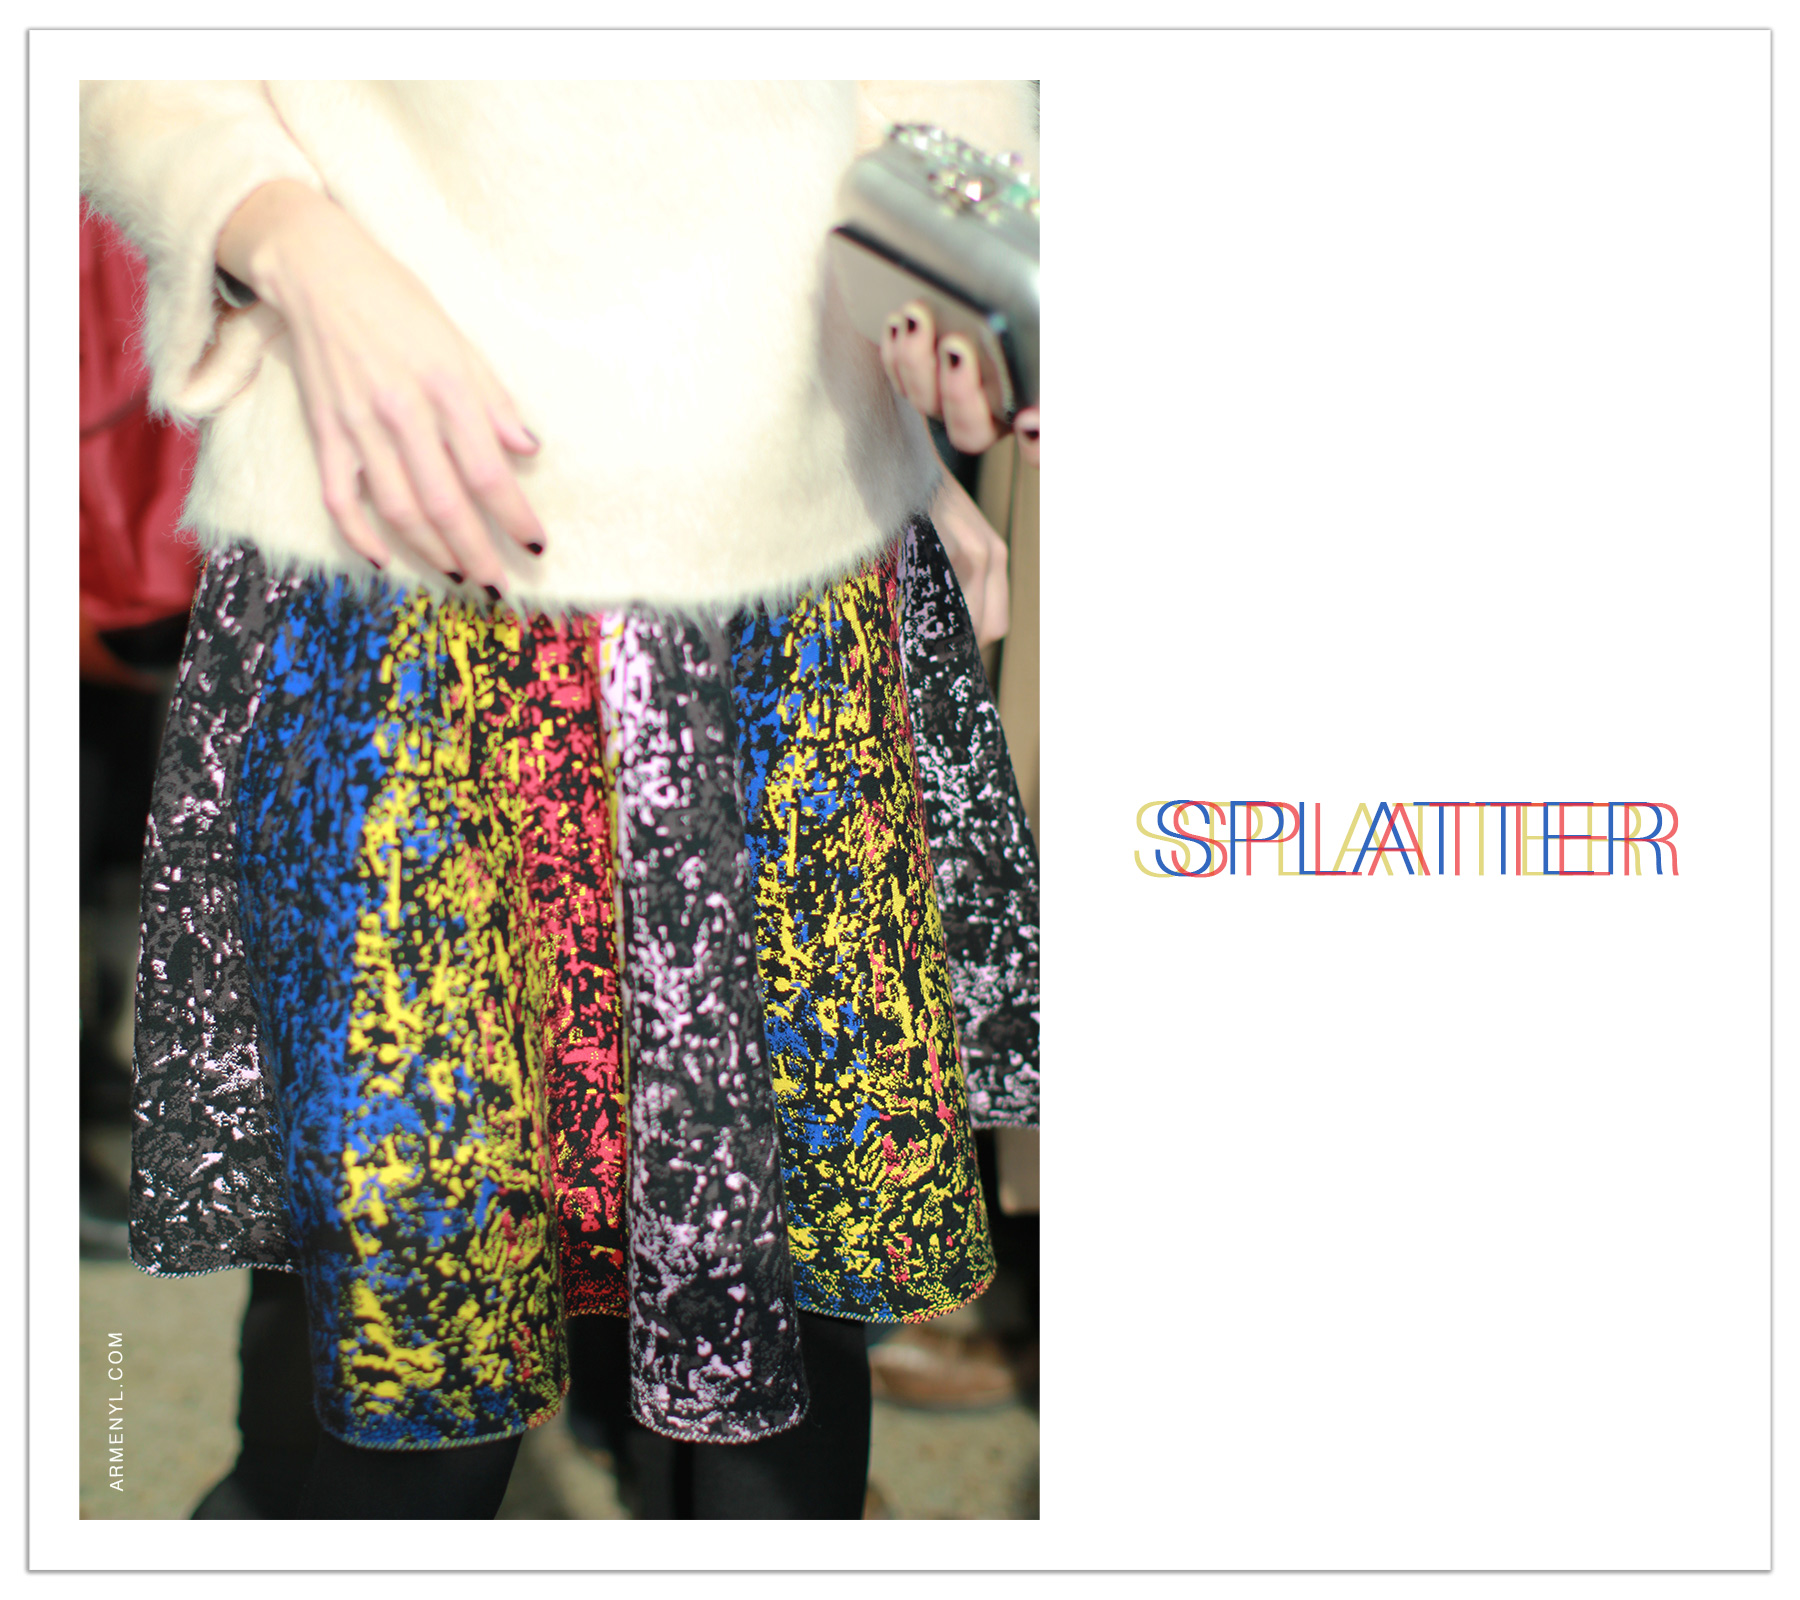 SPLATTER  Print by Armenyl.com blessed